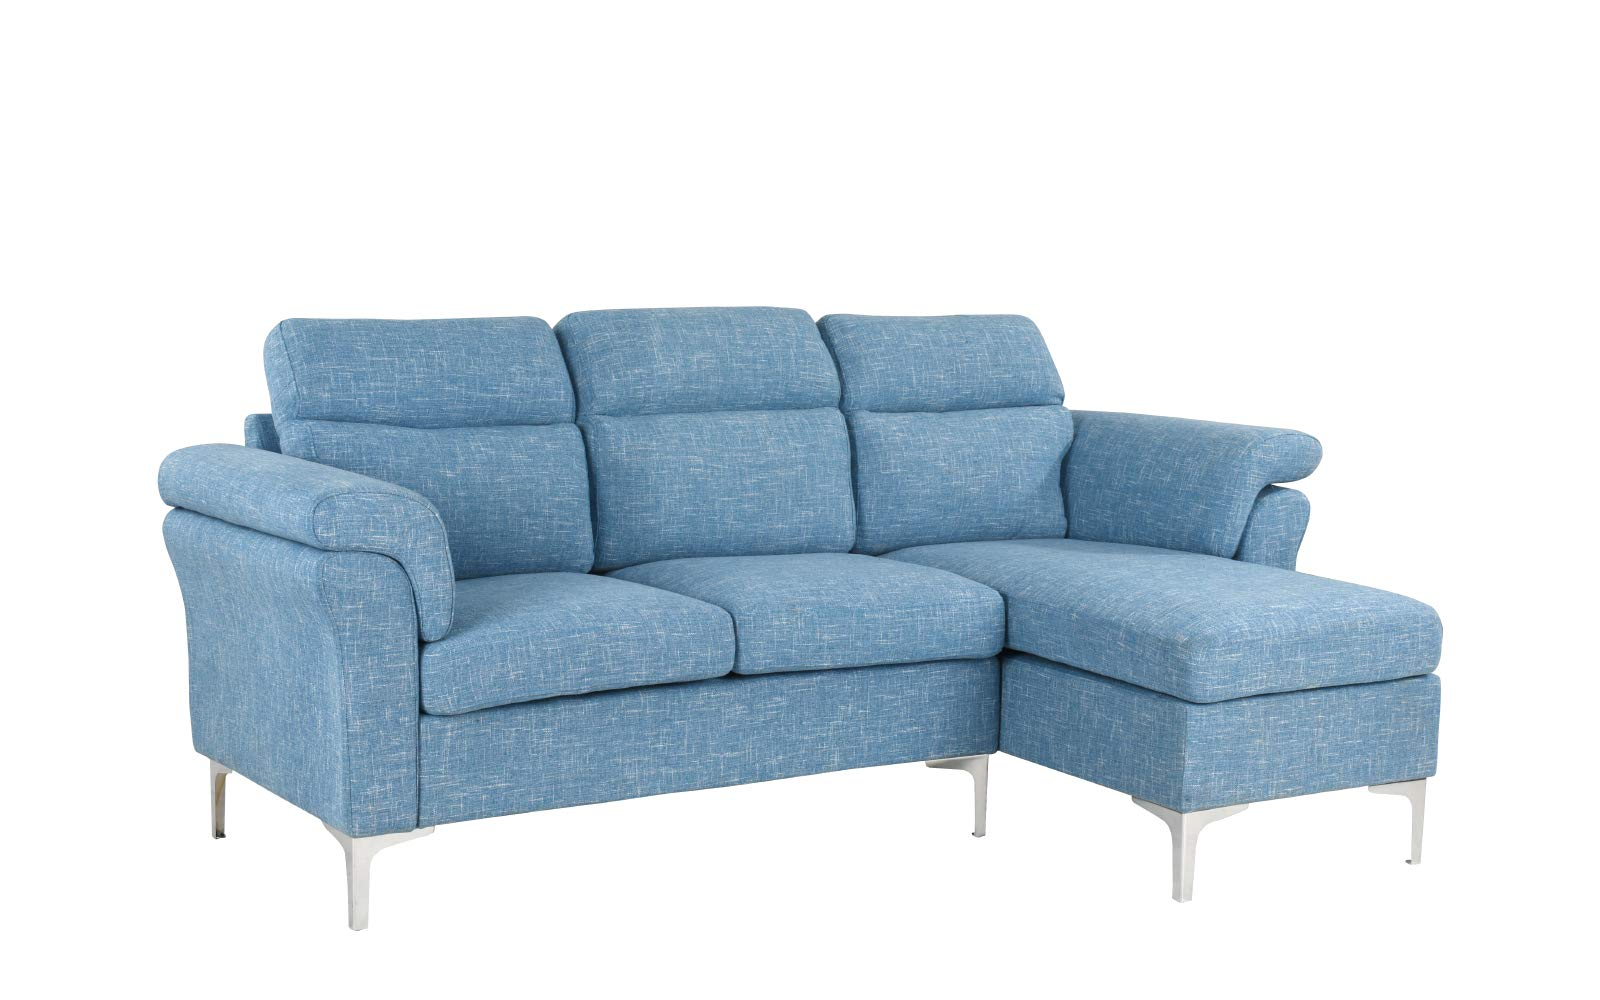 Casa Andrea Milano Modern Linen Fabric Sectional Sofa - Small Space Couch (Light Blue) - This small space sectional sofa features an exquisite modern design with wrap around armrest cushions for extra comfort. Our modern sectional sofa comes wrapped in carefully selected linen fabric upholstery. This modern sectional sofa has been specifically designed to fit into small spaces while still remaining spacious Our specially designed fabric provides the ultimate look while maintaining durability. - sofas-couches, living-room-furniture, living-room - 61MDvY33KpL -